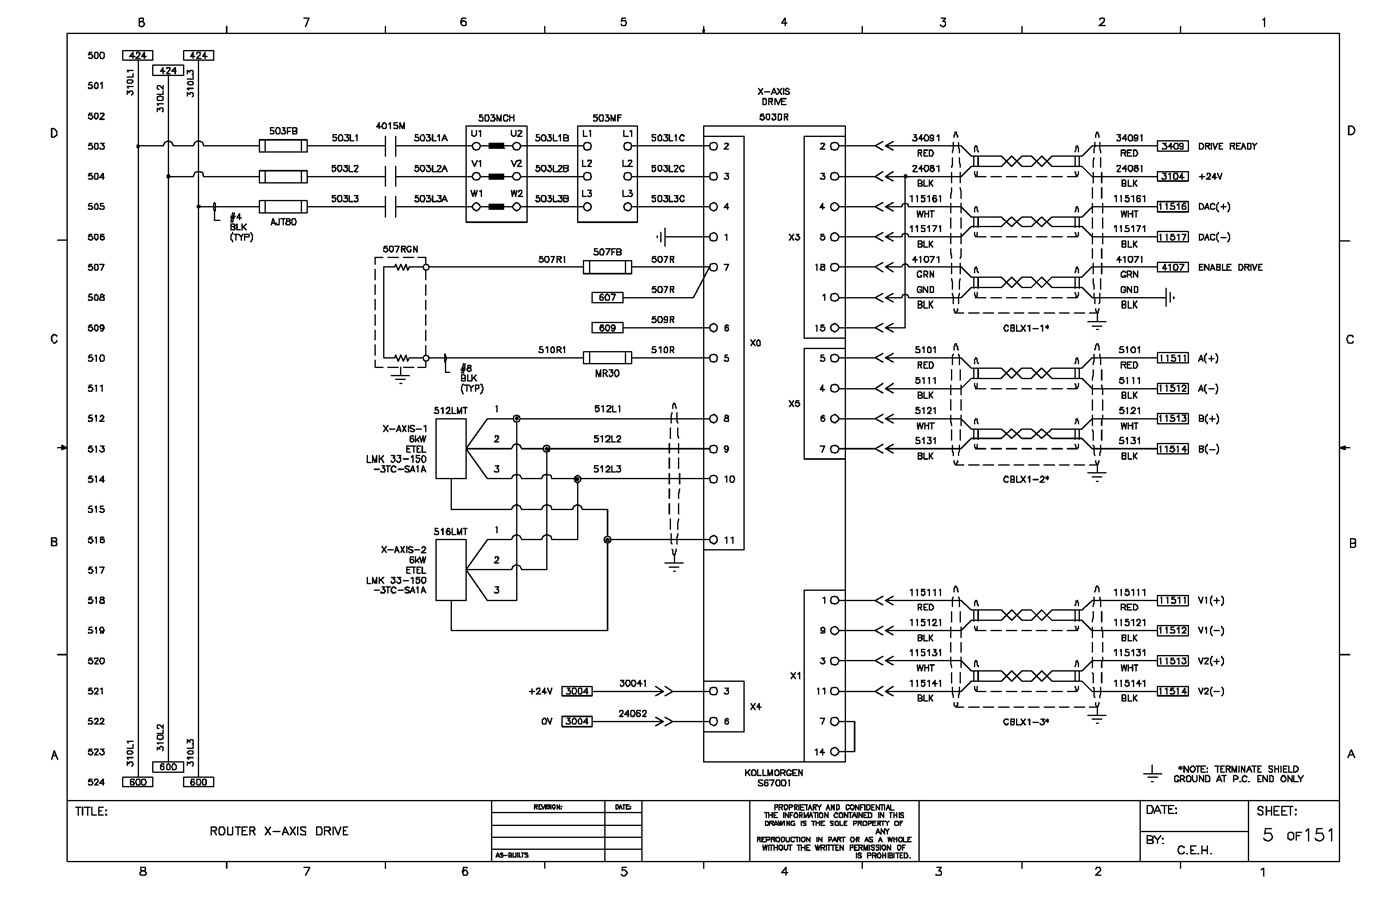 Electrical Schematic Diagrams Opinions About Wiring Diagram For Machines Mechanical Design Services Machine Inc Circuits Basic